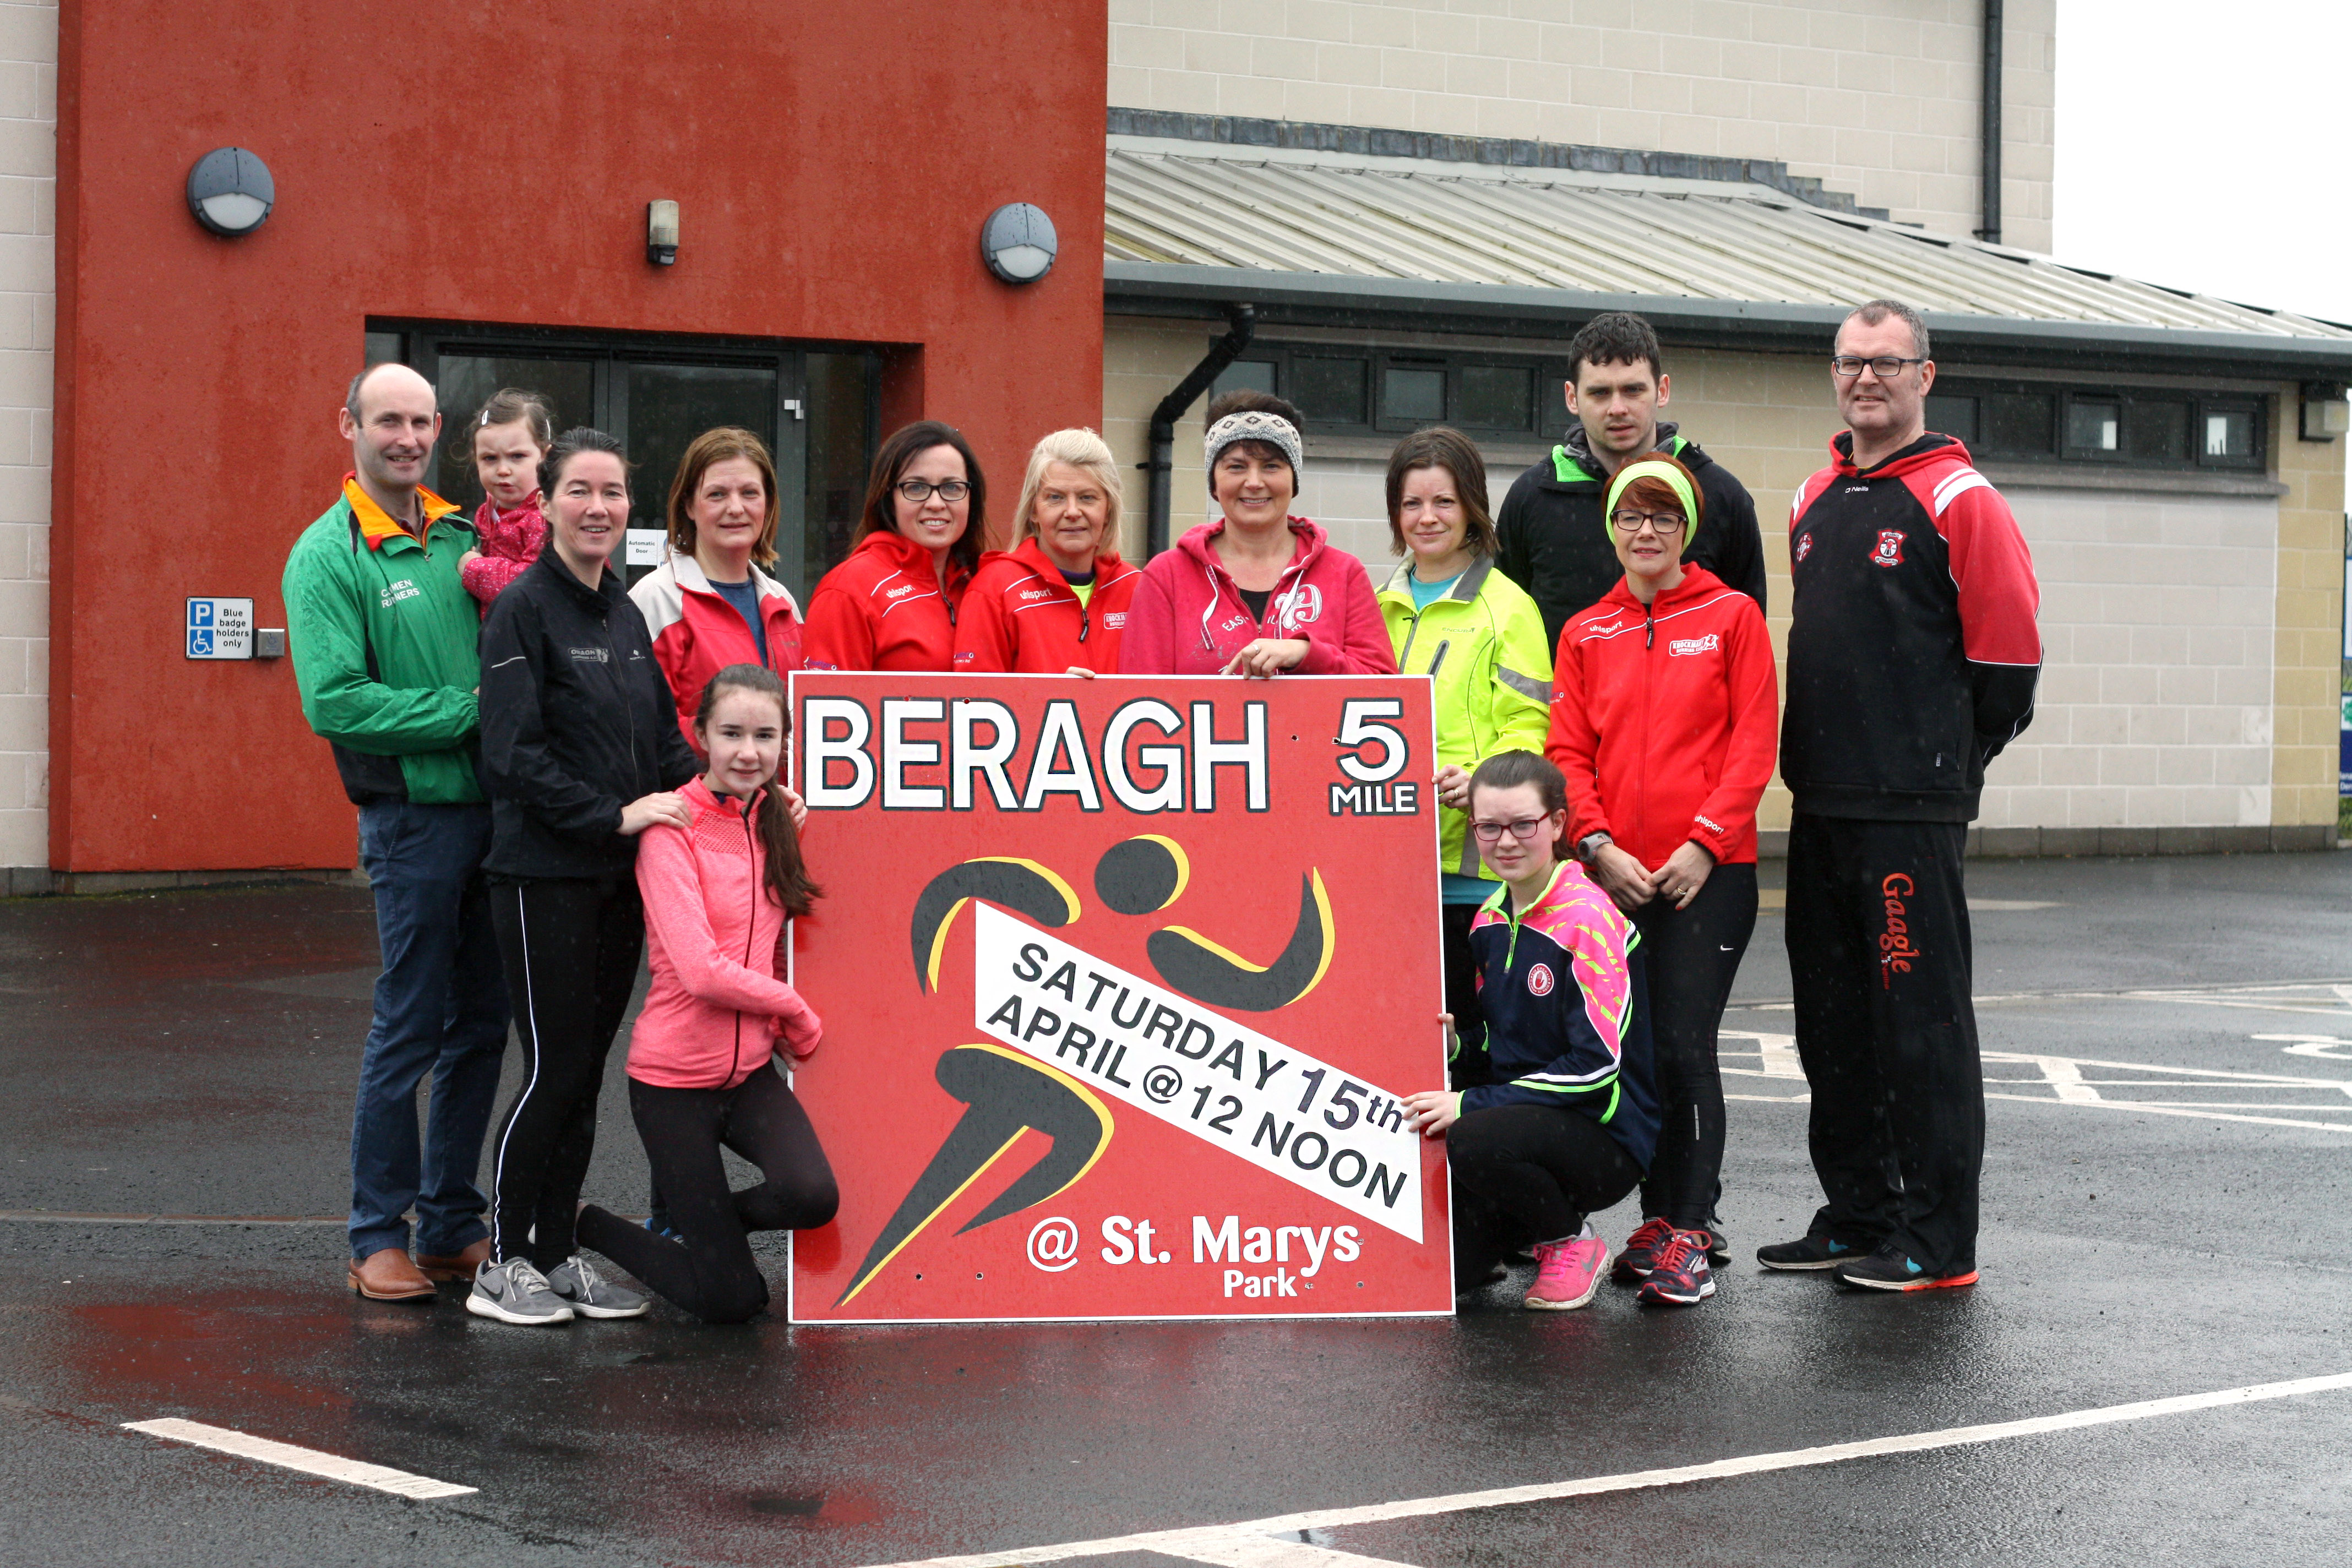 Members of the Beragh 5 organising committee with some of the participants in the Beragh Red Knight's couch to 5K programme looking ahead to this year's event on Saturday April 15.